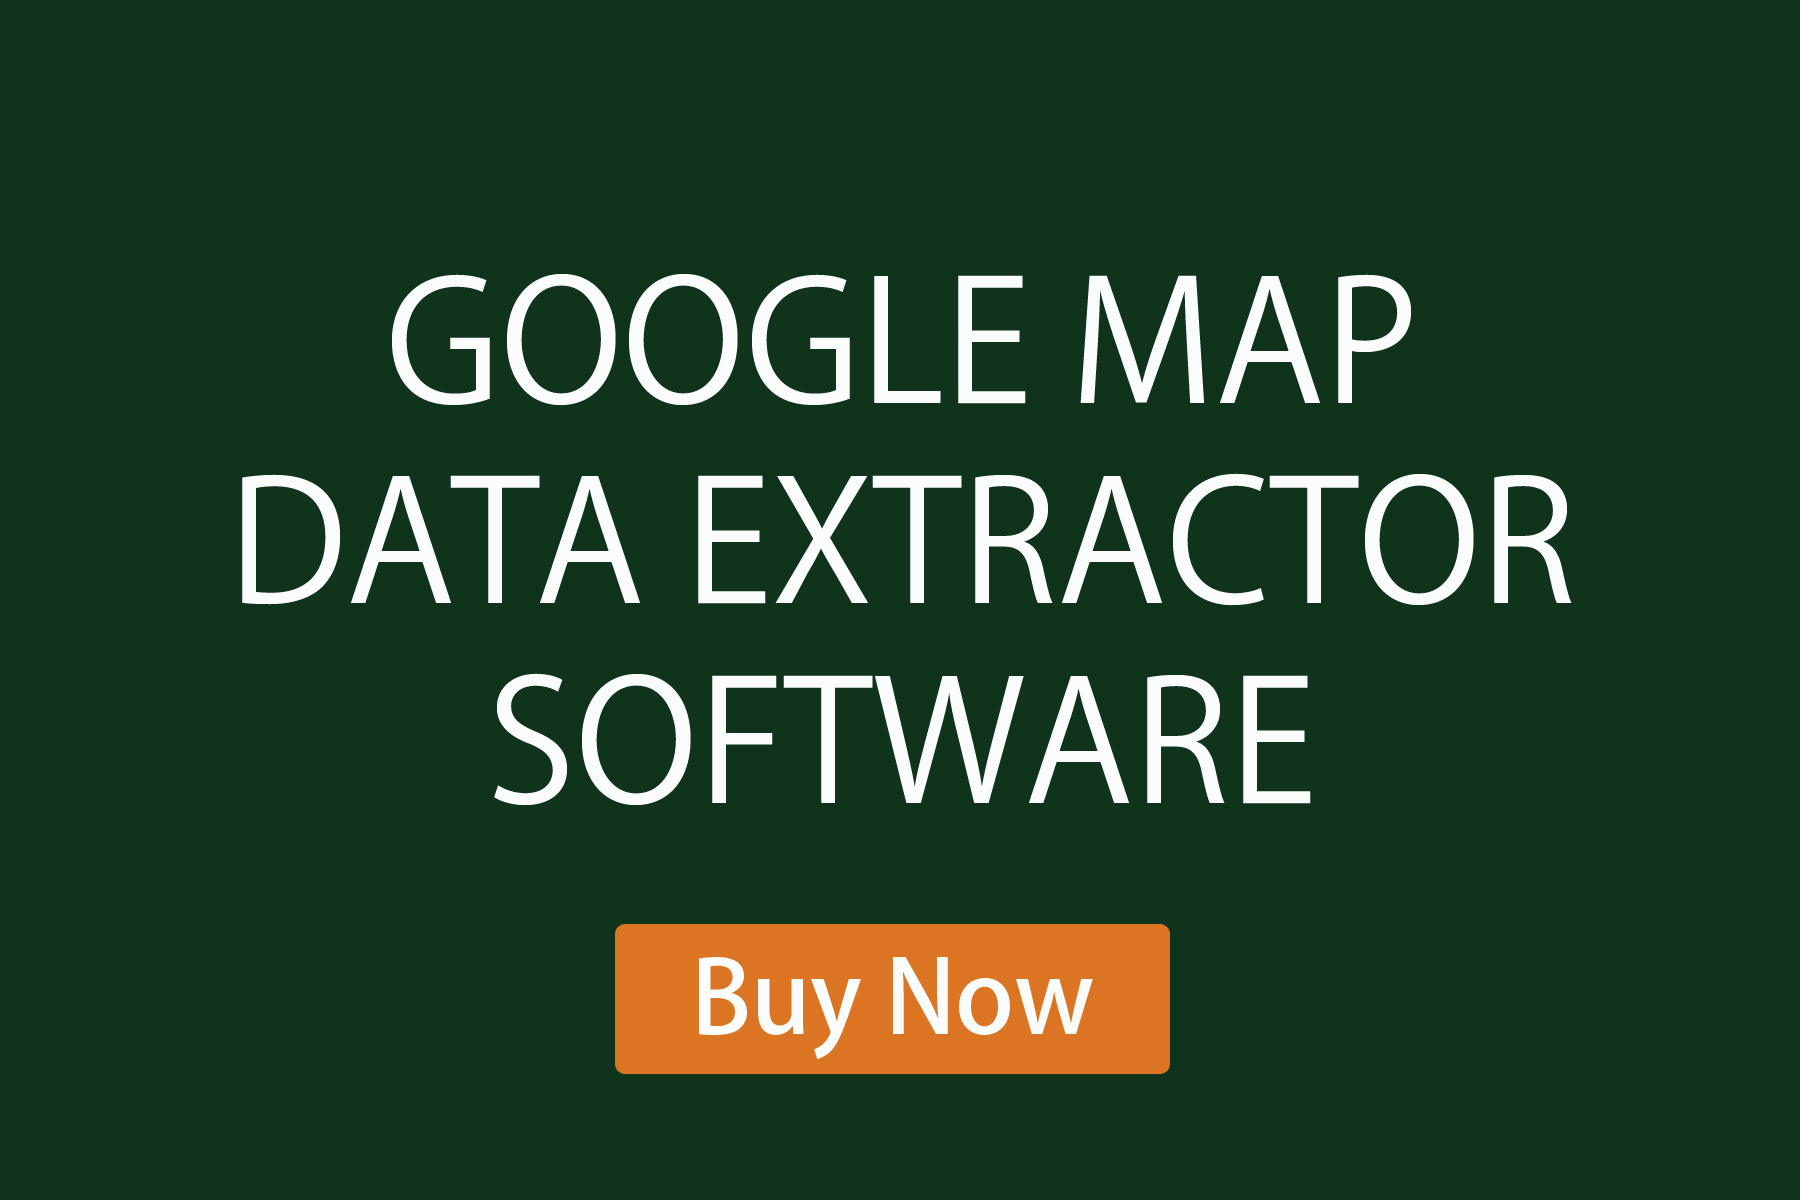 Google maps data extractor software